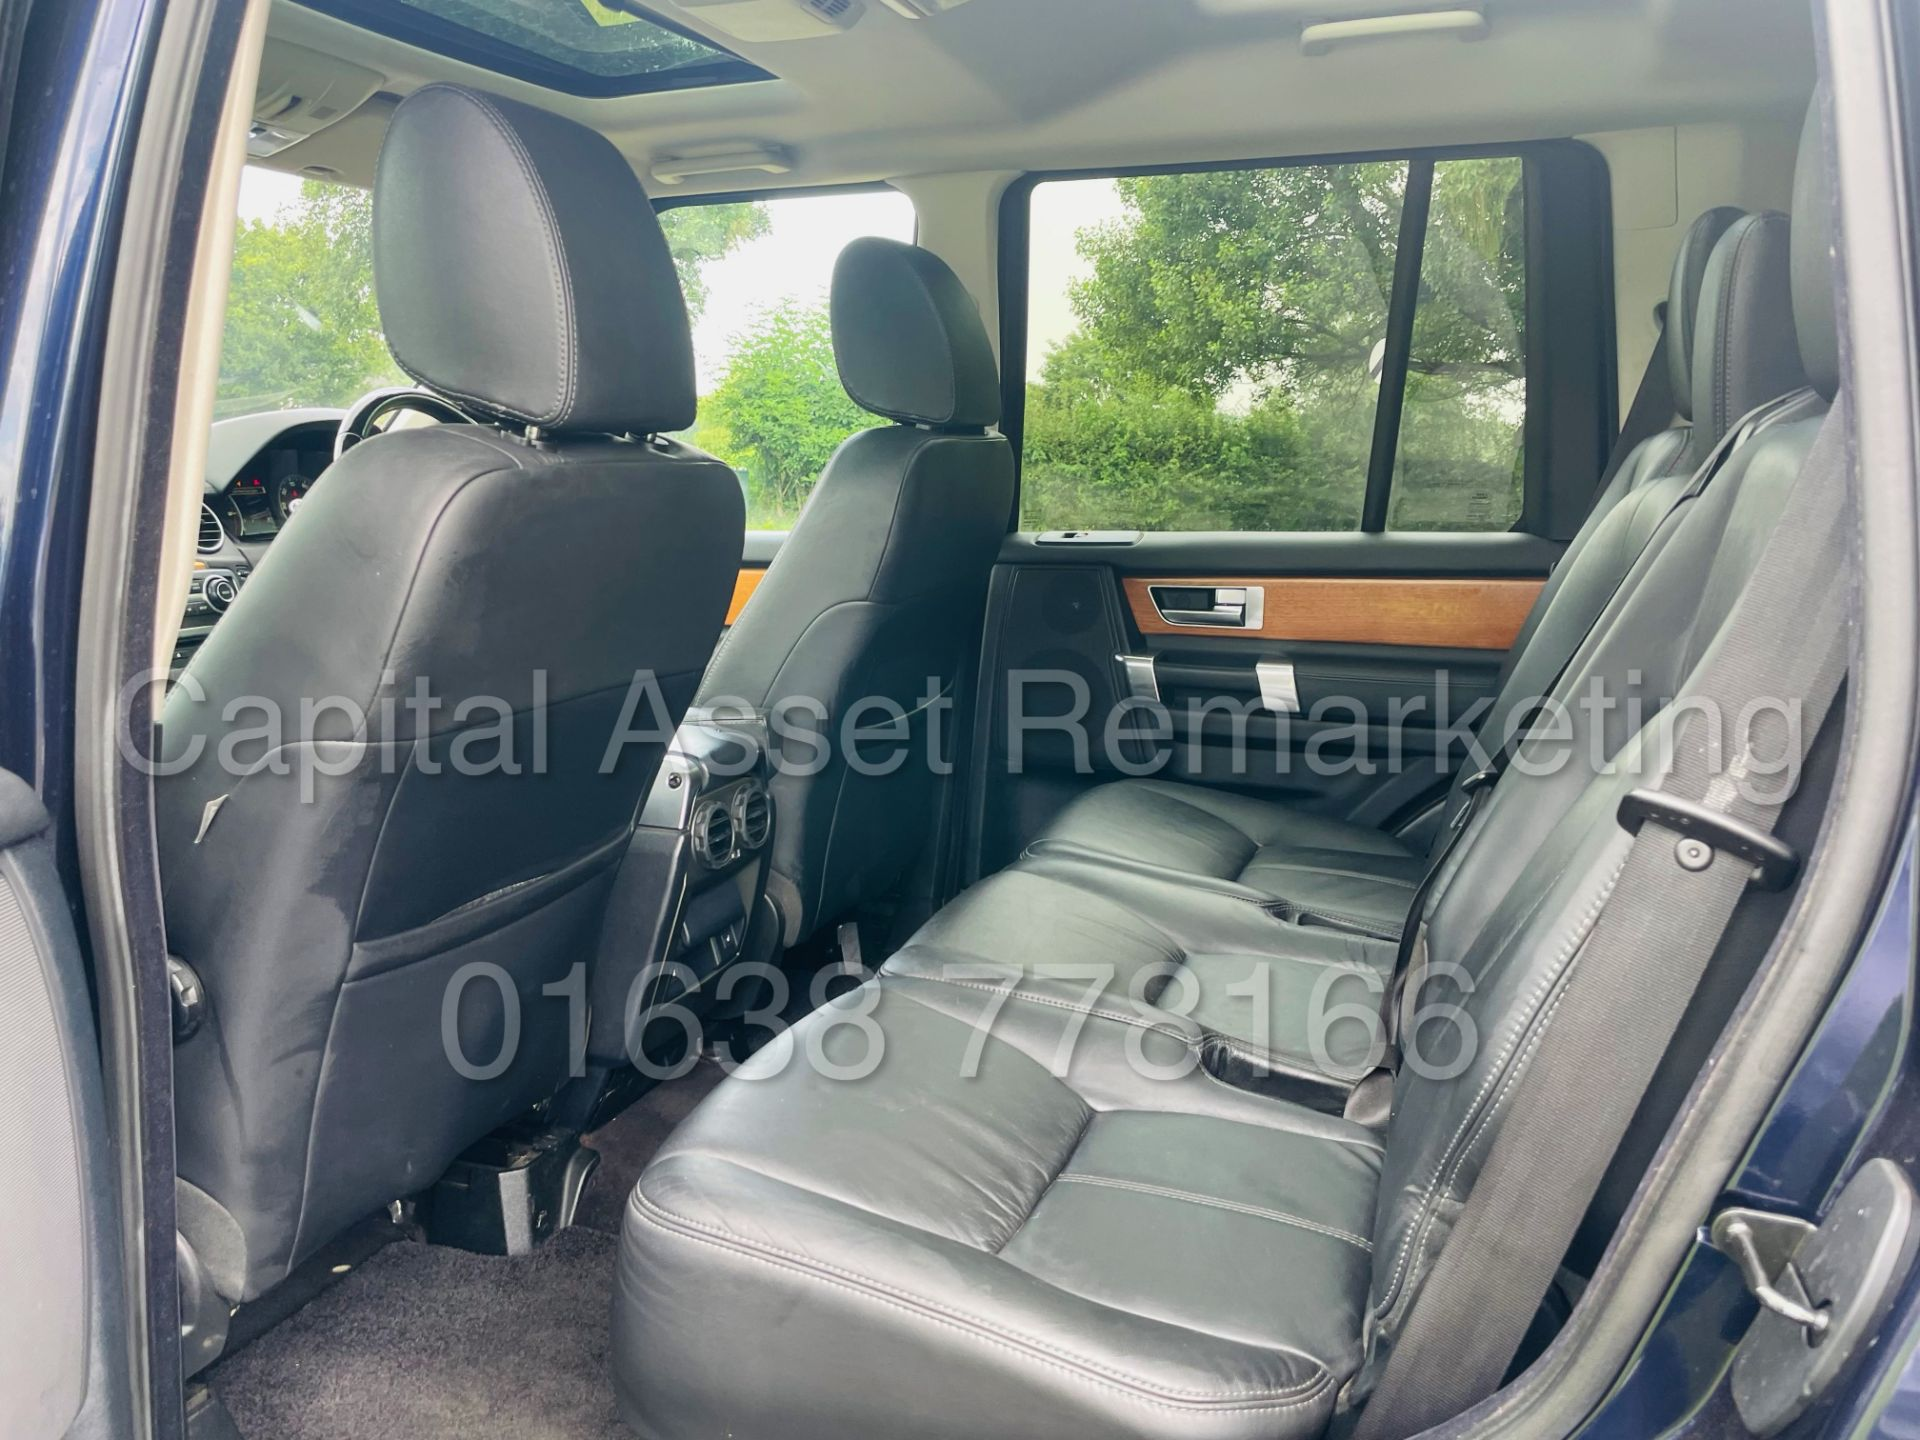 LAND ROVER DISCOVERY 4 *HSE* 7 SEATER SUV (2014 - NEW MODEL) '3.0 SDV6 - 255 BHP - 8 SPEED AUTO' - Image 27 of 61